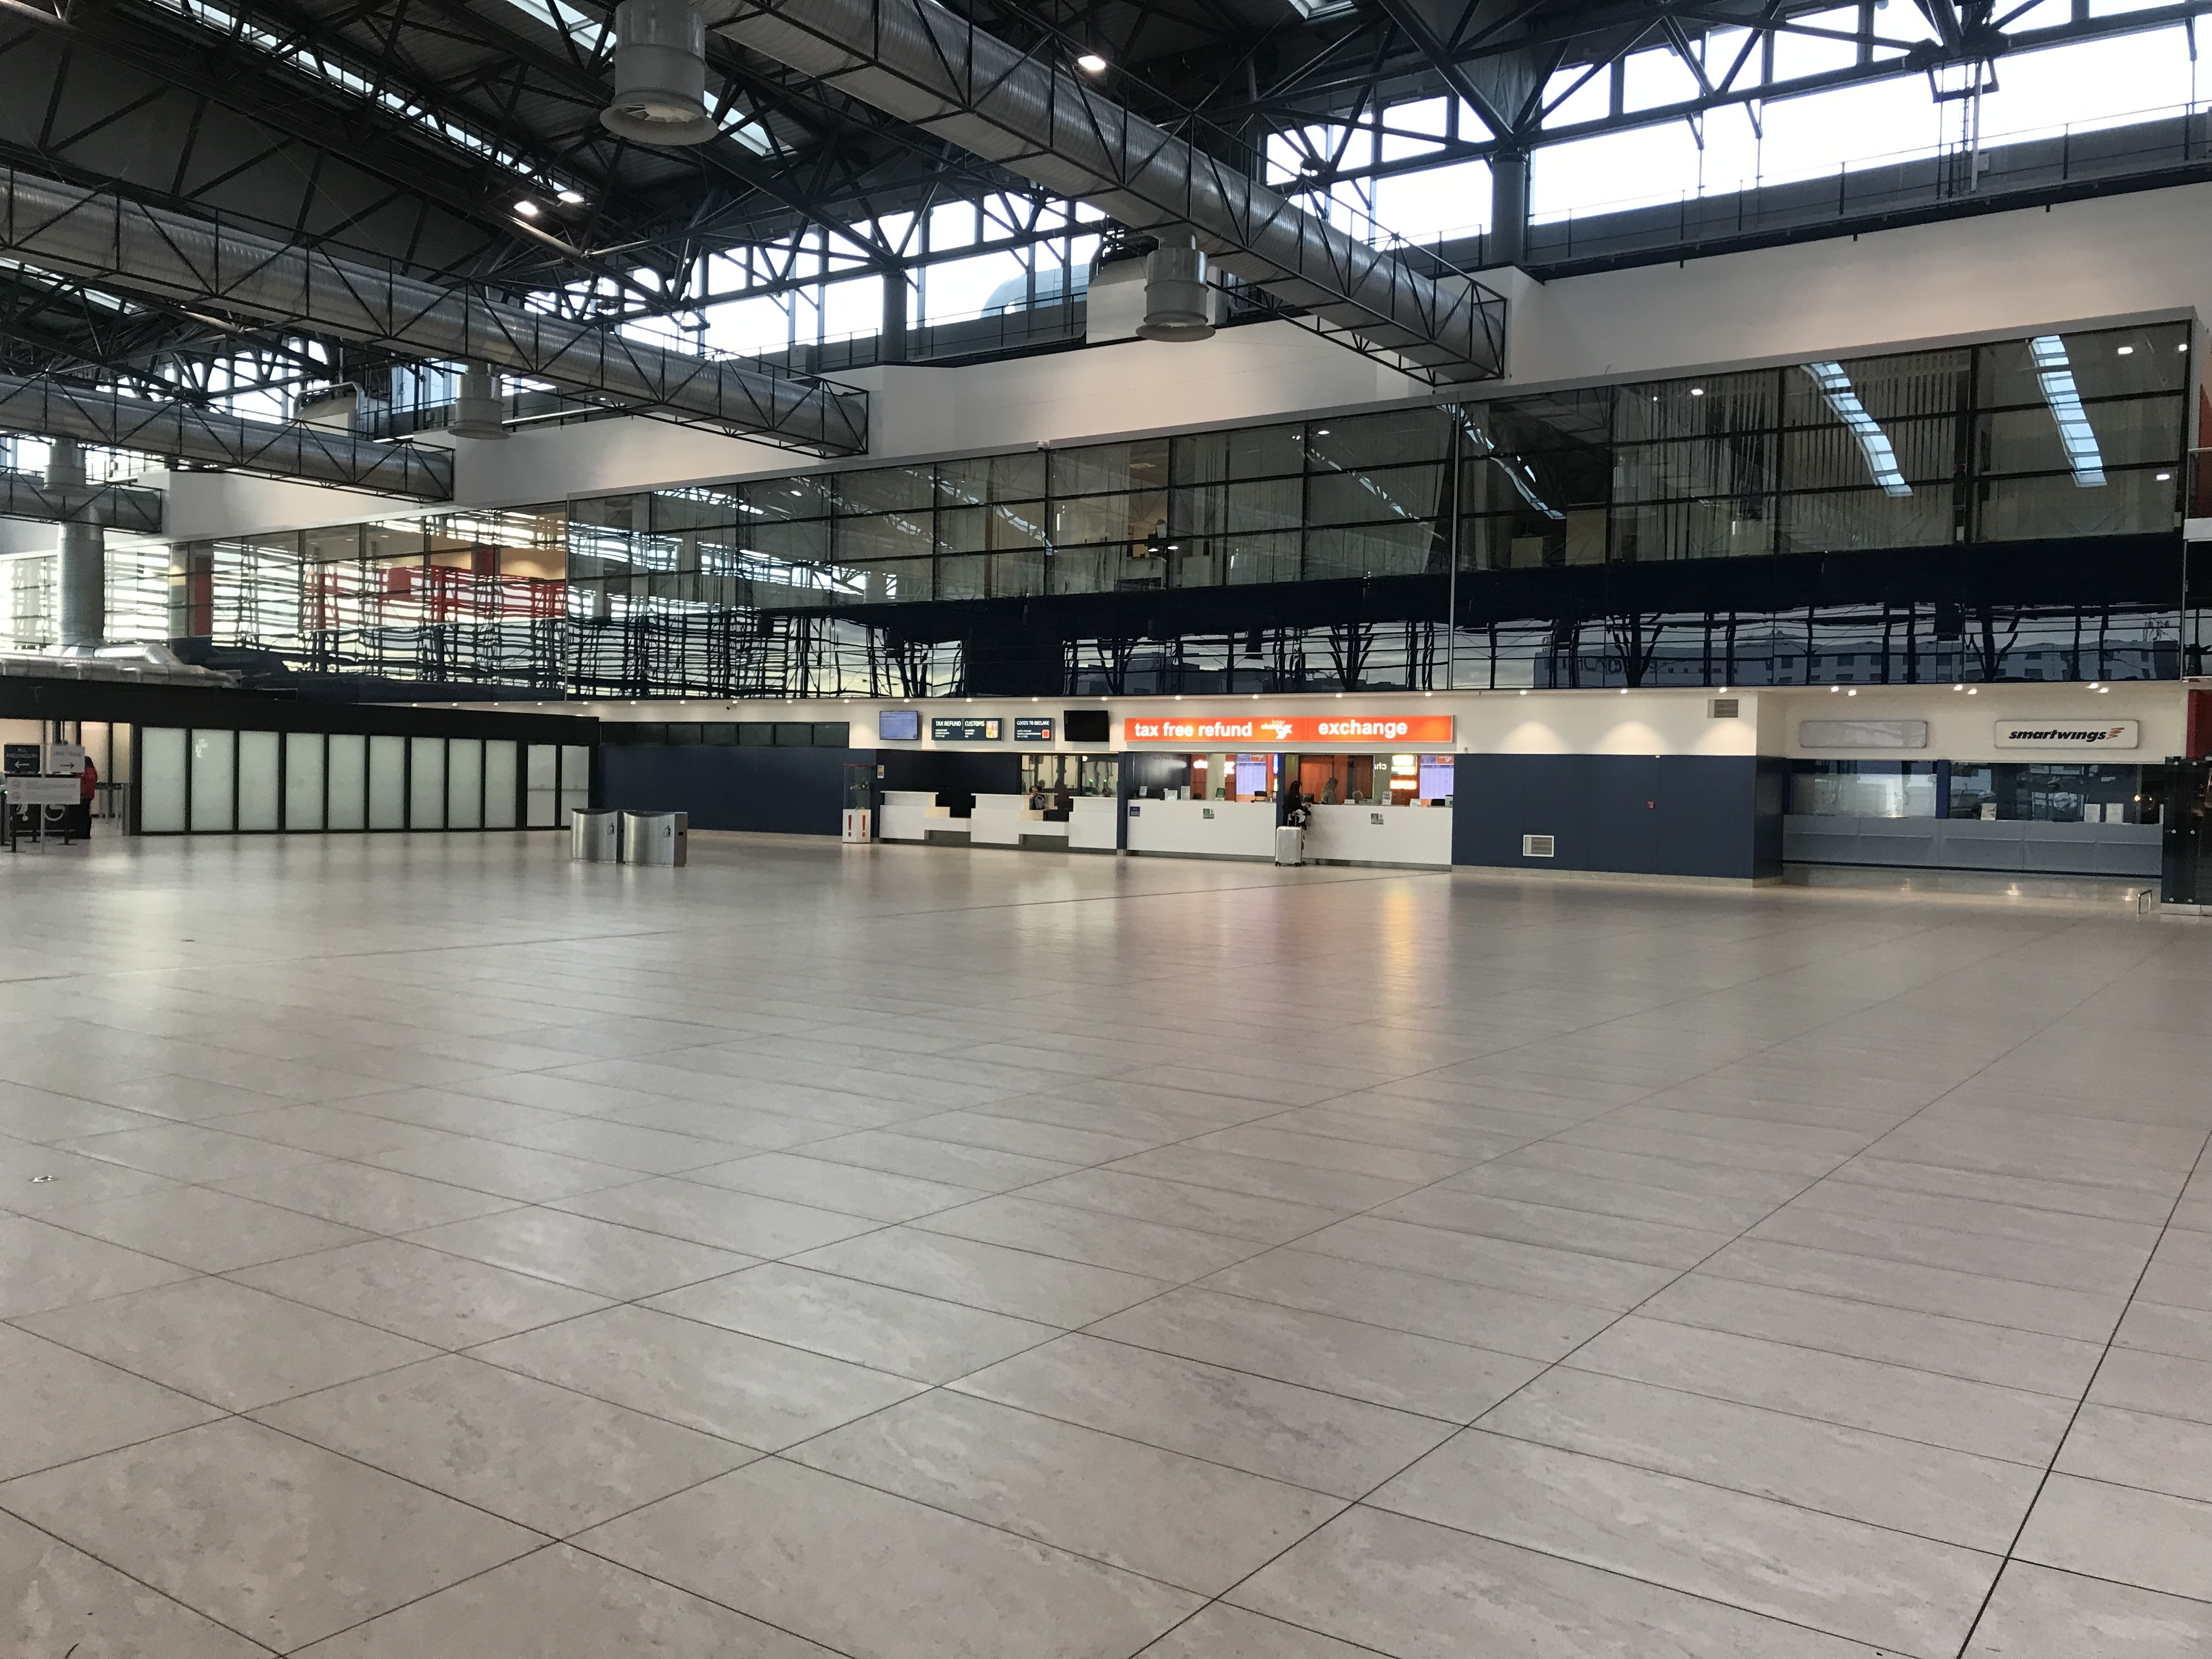 Prague Tips - You can exchange your koronas to your local currency at the exchange office in the main entrance of the Prague Airport